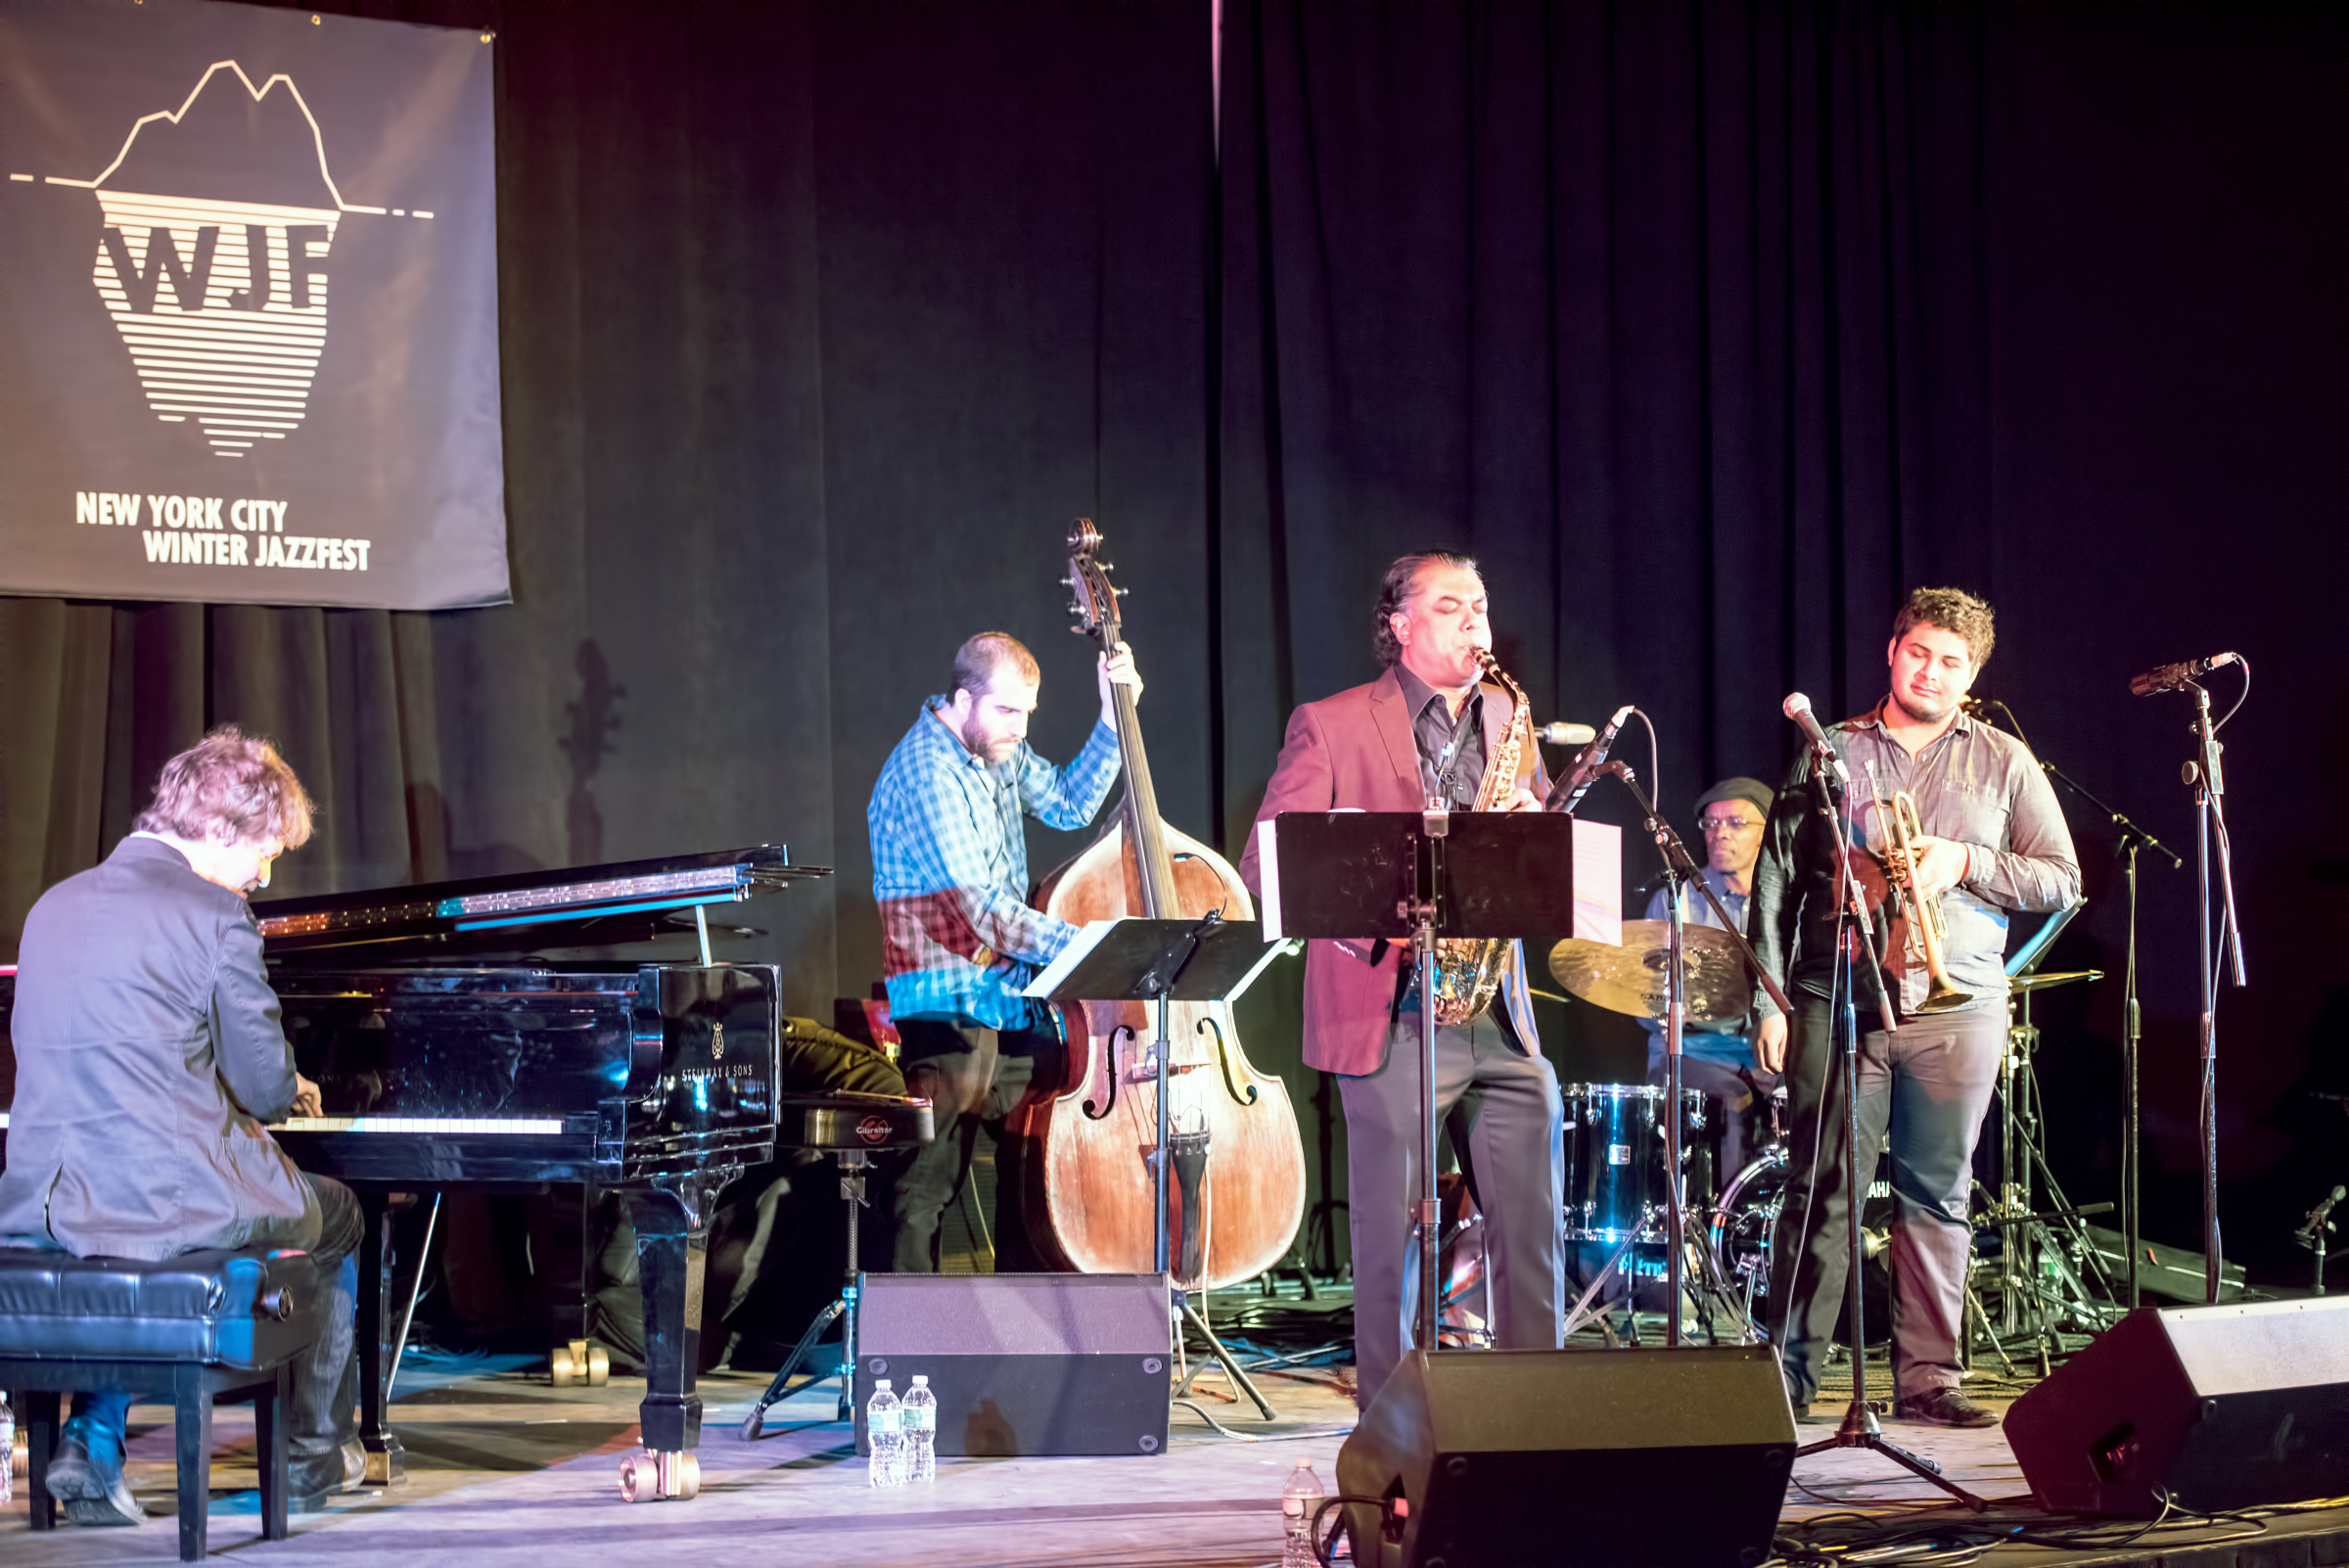 Matt Mitchell, Chris Tordini, Rudresh Mahanthappa, Adam O'farril and Rudy Royston with Rudresh Mahanthappa's Bird Calls (the Charlie Parker Project) at the Nyc Winter Jazzfest 2015